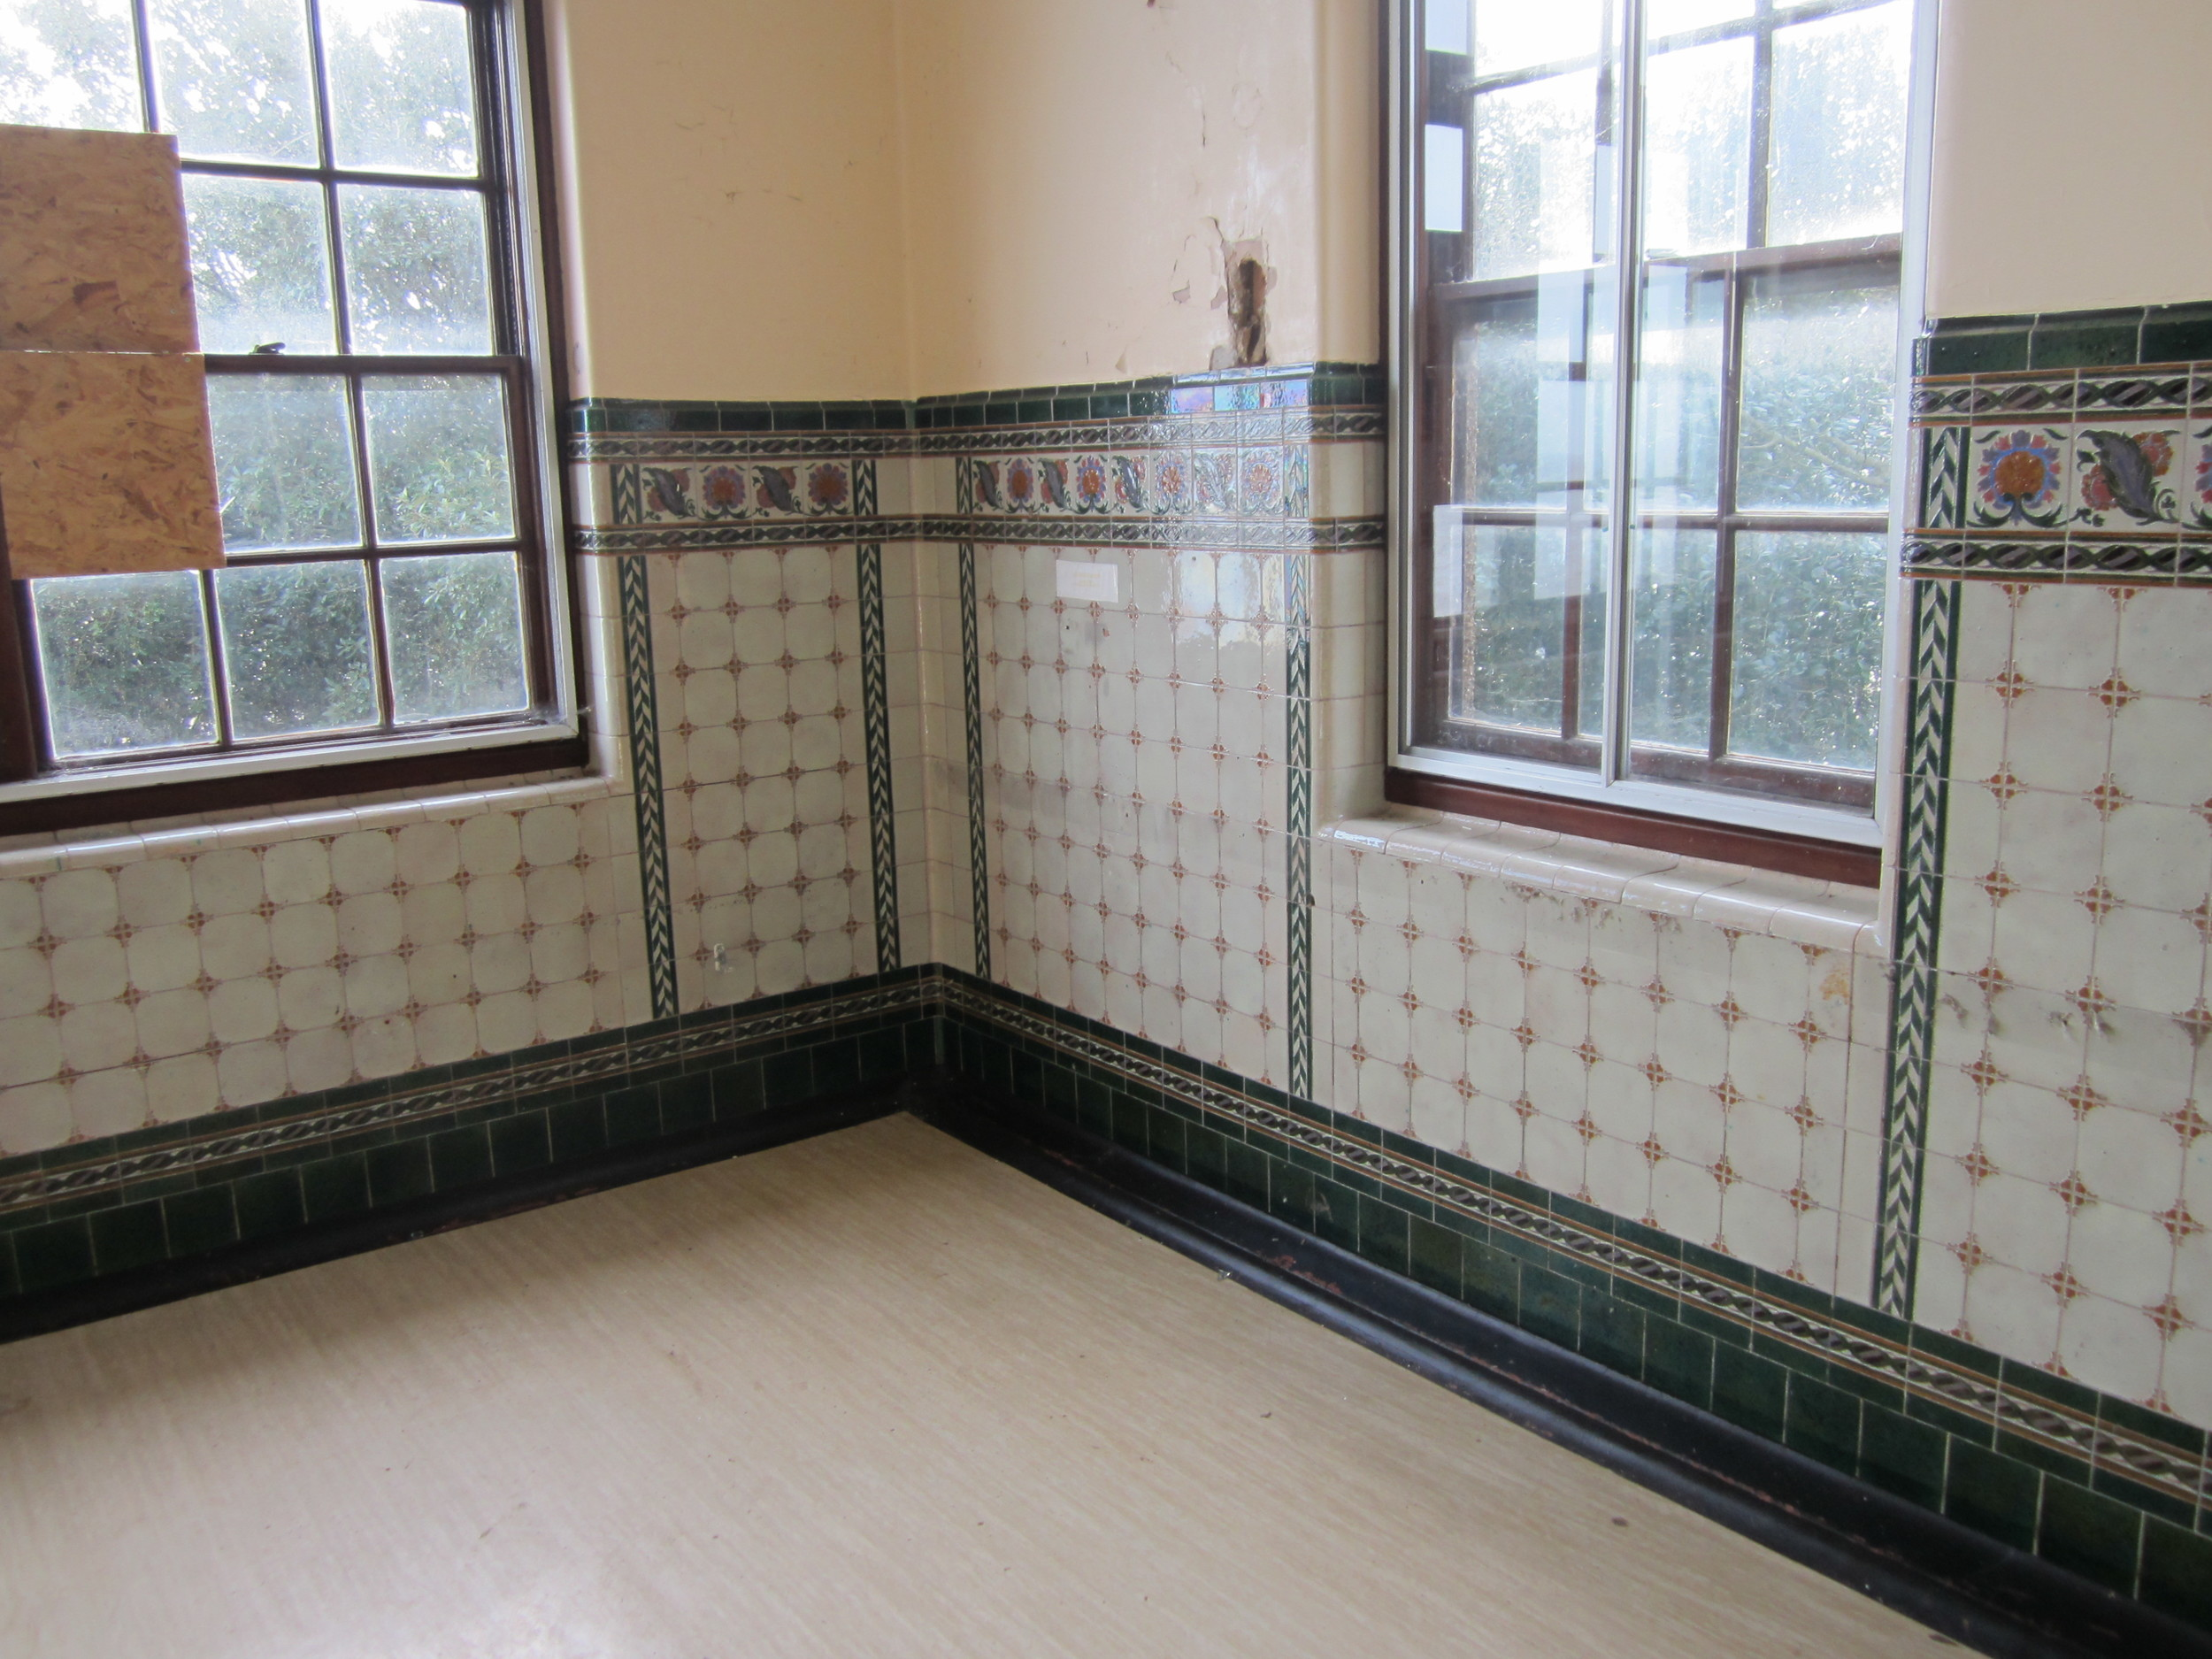 The existing tiling in the former wards of the Bartlet Hospital has been preserved and protected behind carefully constructed panelling which ensures its preservation with the conversion to residential units.